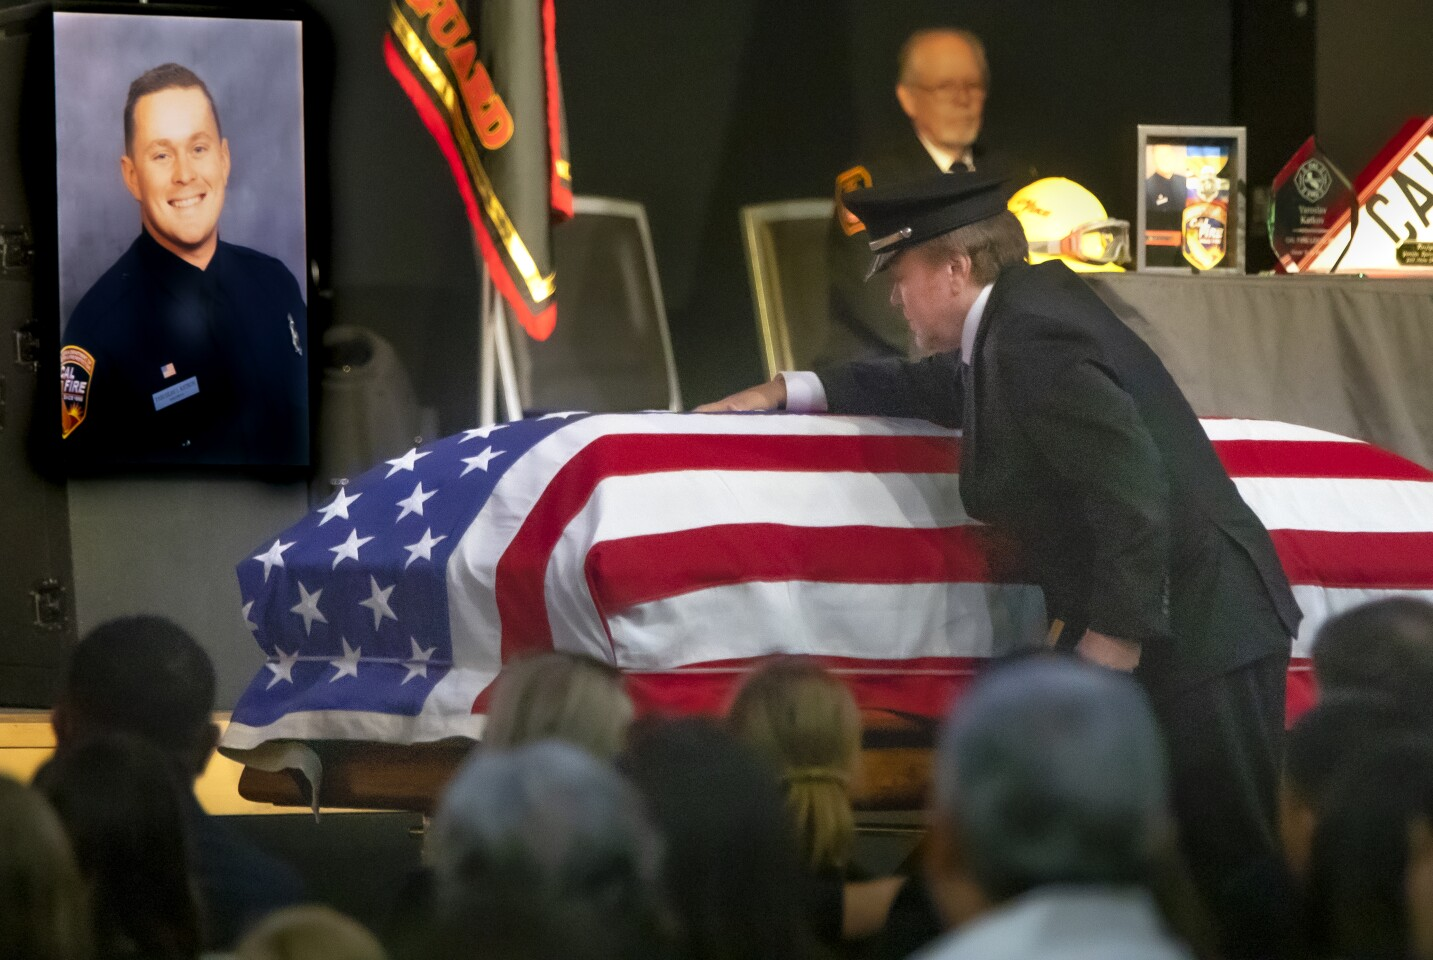 Igor Katkov, the father of Cal Fire Firefighter Yaroslav Katkov, wearing his son's uniform hat, places his hand on his son's flag draped casket during the celebration of life for Yaroslav, August 6, 2019, at North Coast Church in Vista, California. He passed away July 29 after suffering a medical emergency while on a training hike with other firefighters near Cal Fire San Diego County Fire Station 16 in De Luz, where he was assigned. He had been with Cal Fire for less than a year.